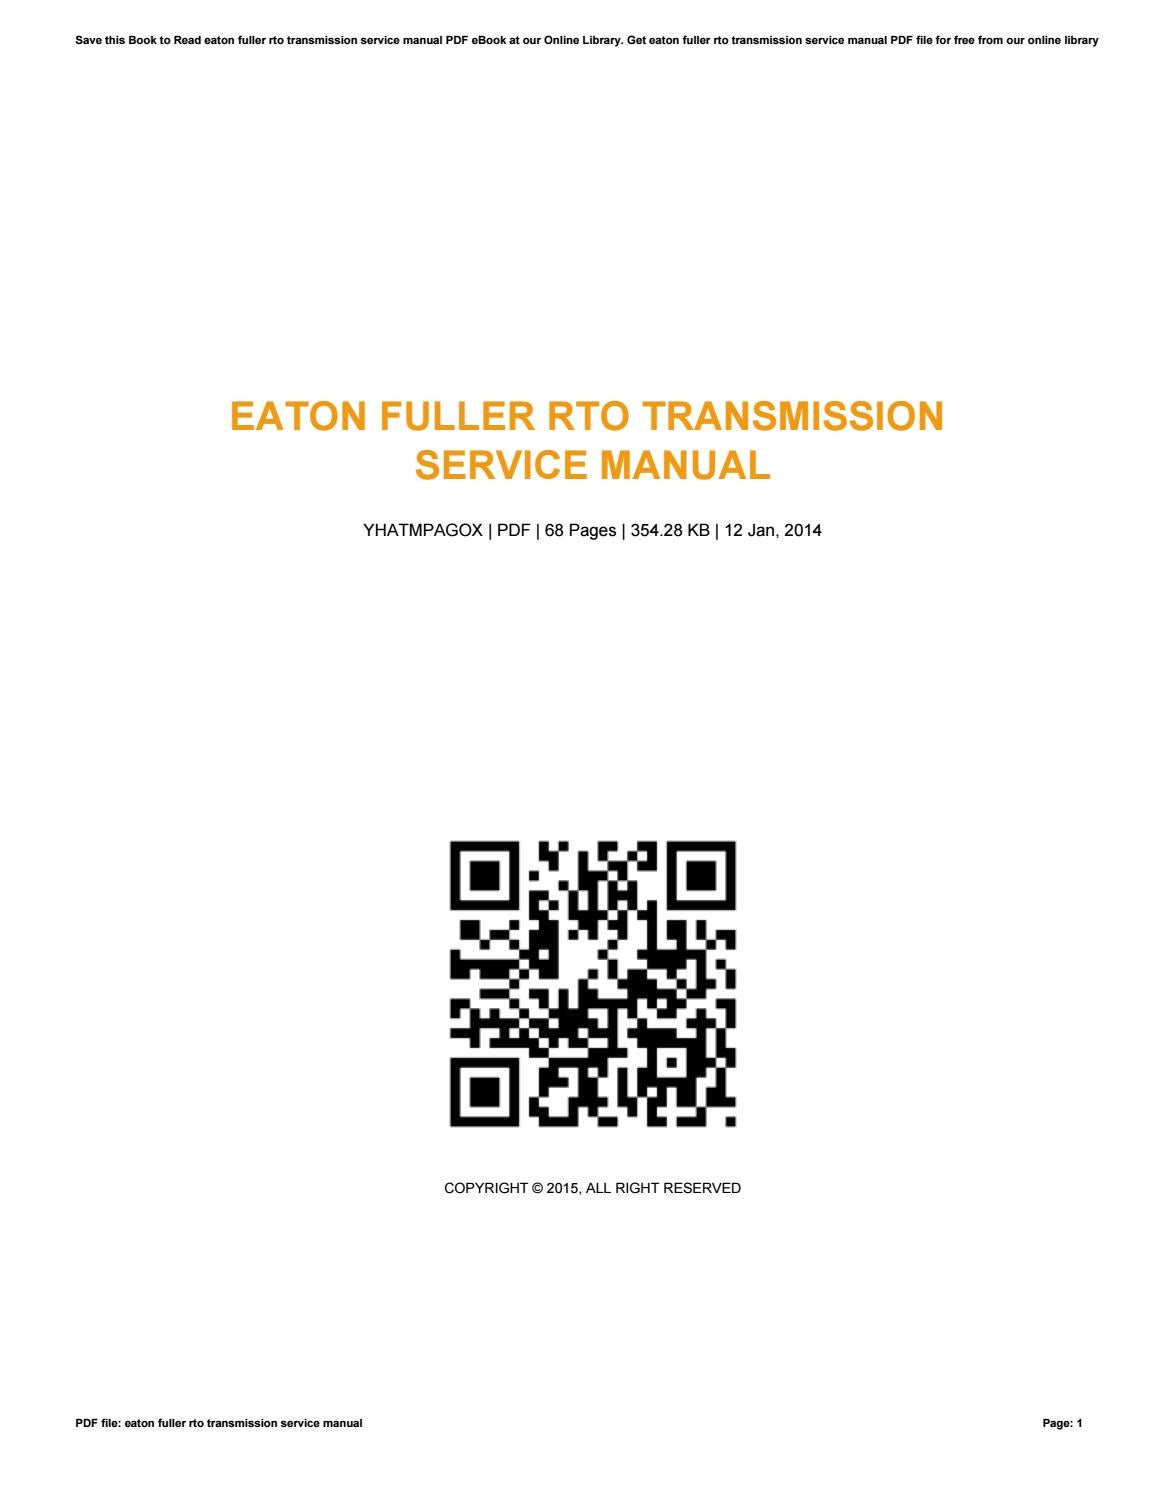 Eaton fuller rto transmission service manual by